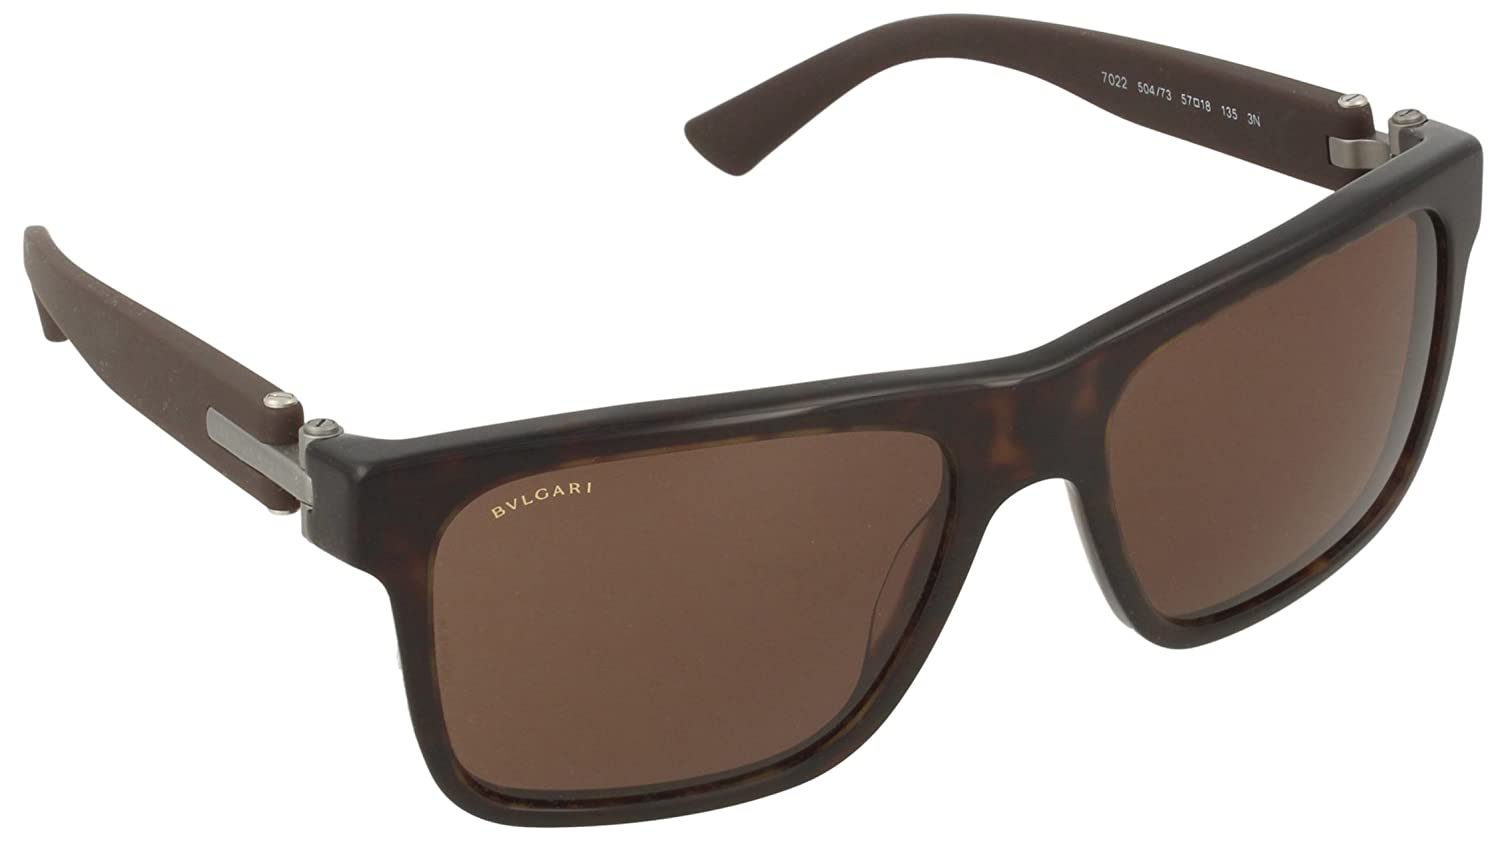 Bvlgari Mens BV7022 Sunglasses Dark Havana Brown 57mm